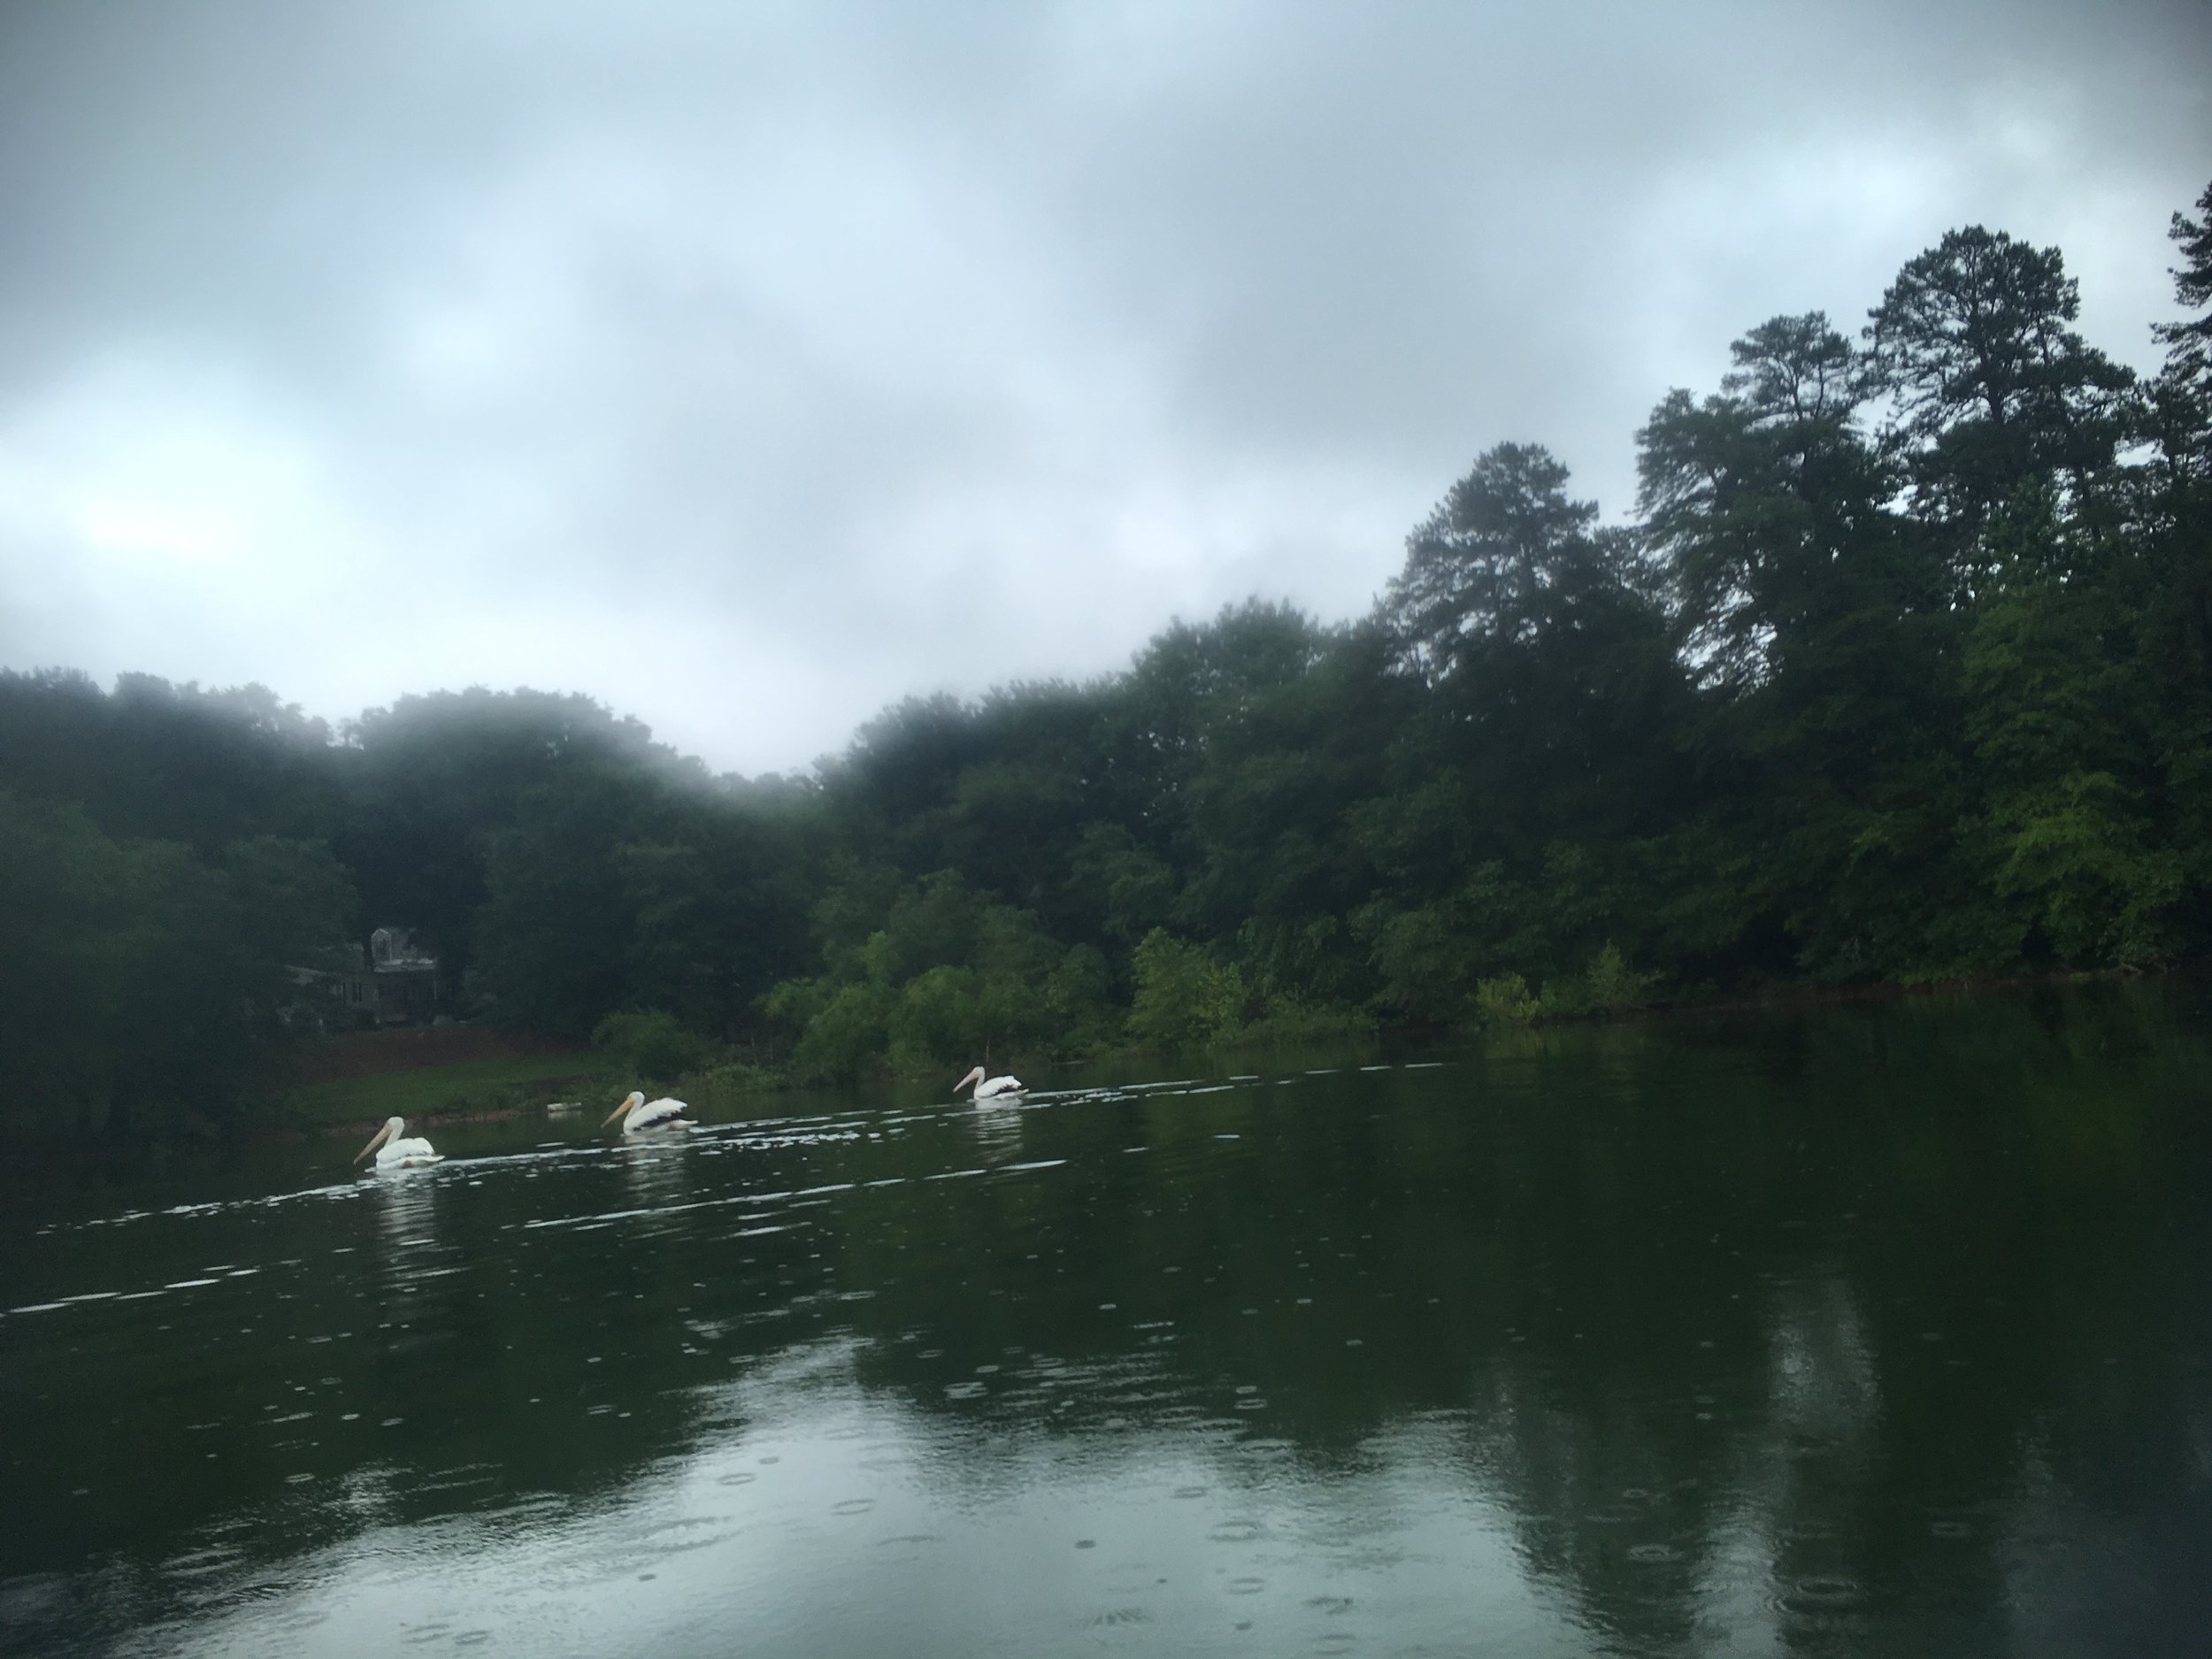 Pelicans, rare on Lake Lanier, sighted during The Lanier Lap